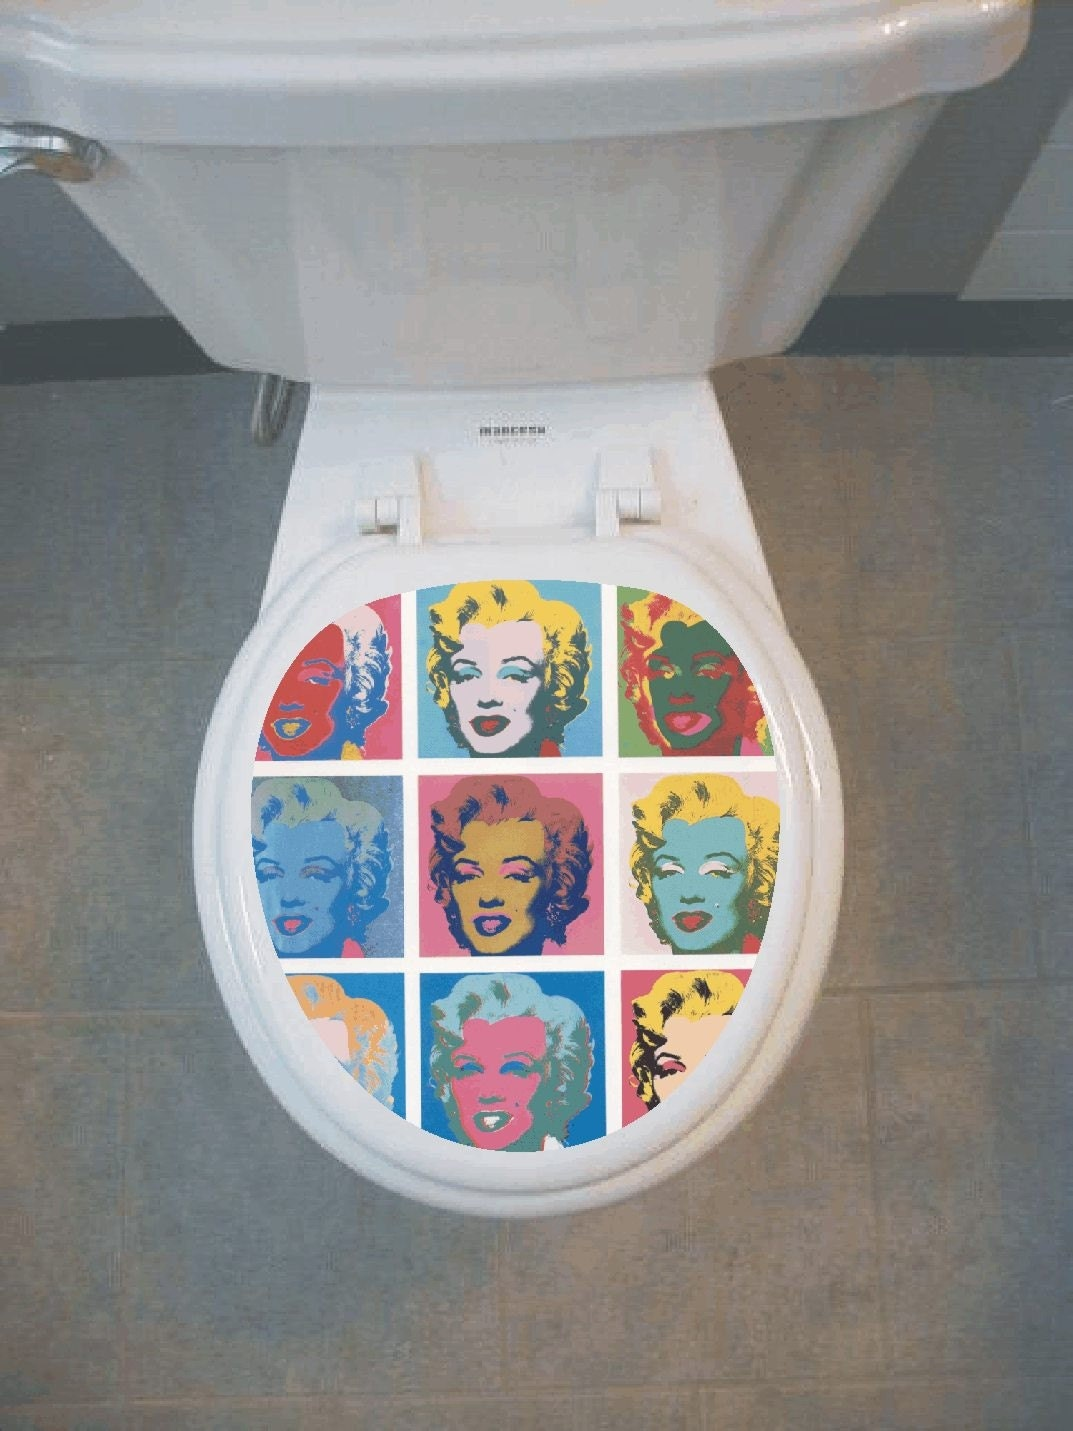 andy warhol marilyn monroe set bathroom toilet seat decal. Black Bedroom Furniture Sets. Home Design Ideas